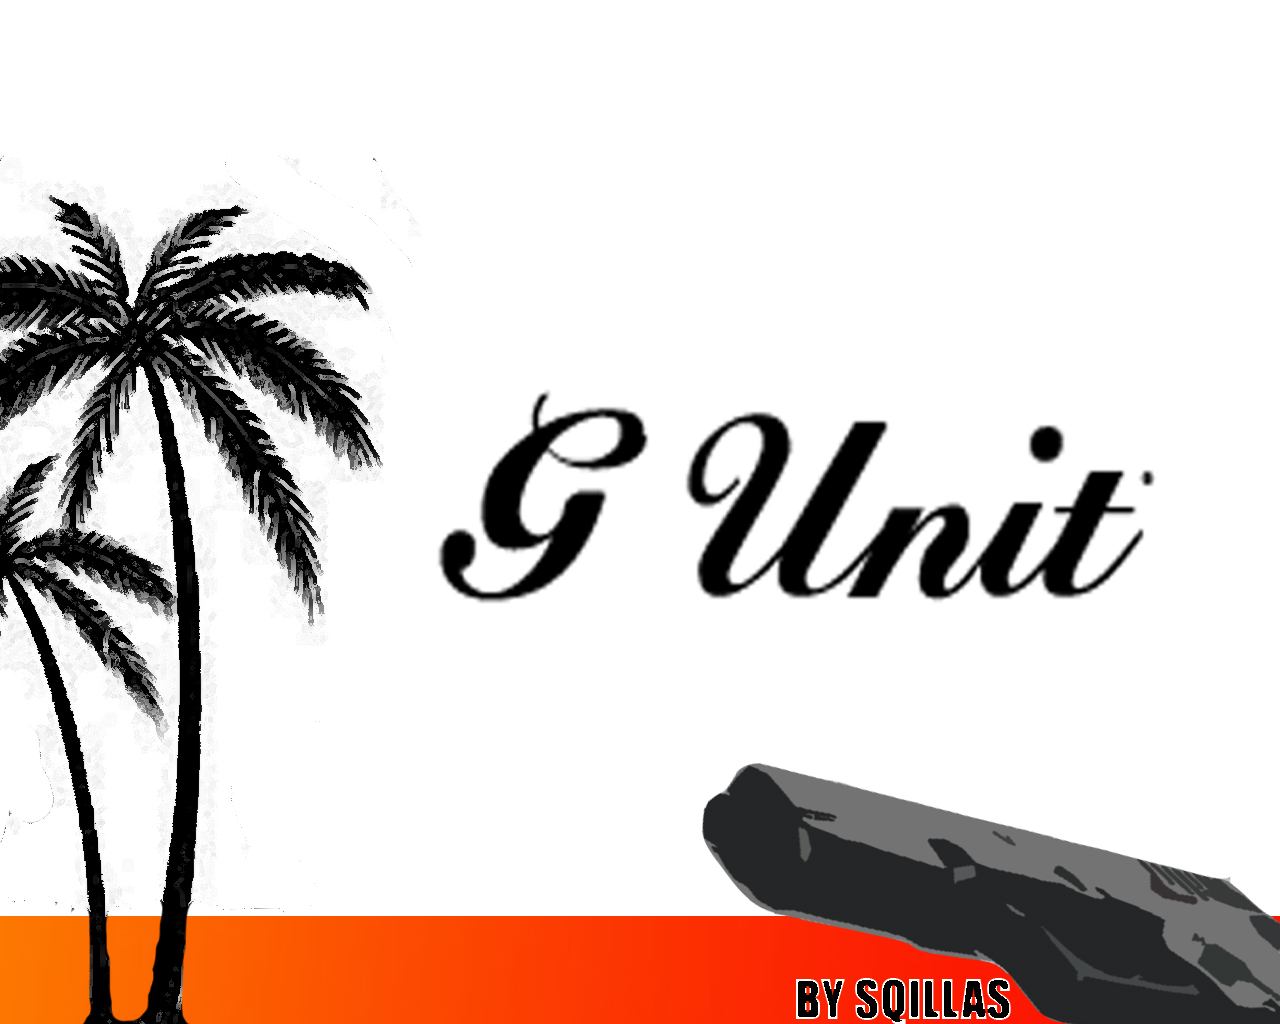 Background wallpaper download wallpaper g unit wallpaper 1280x1024